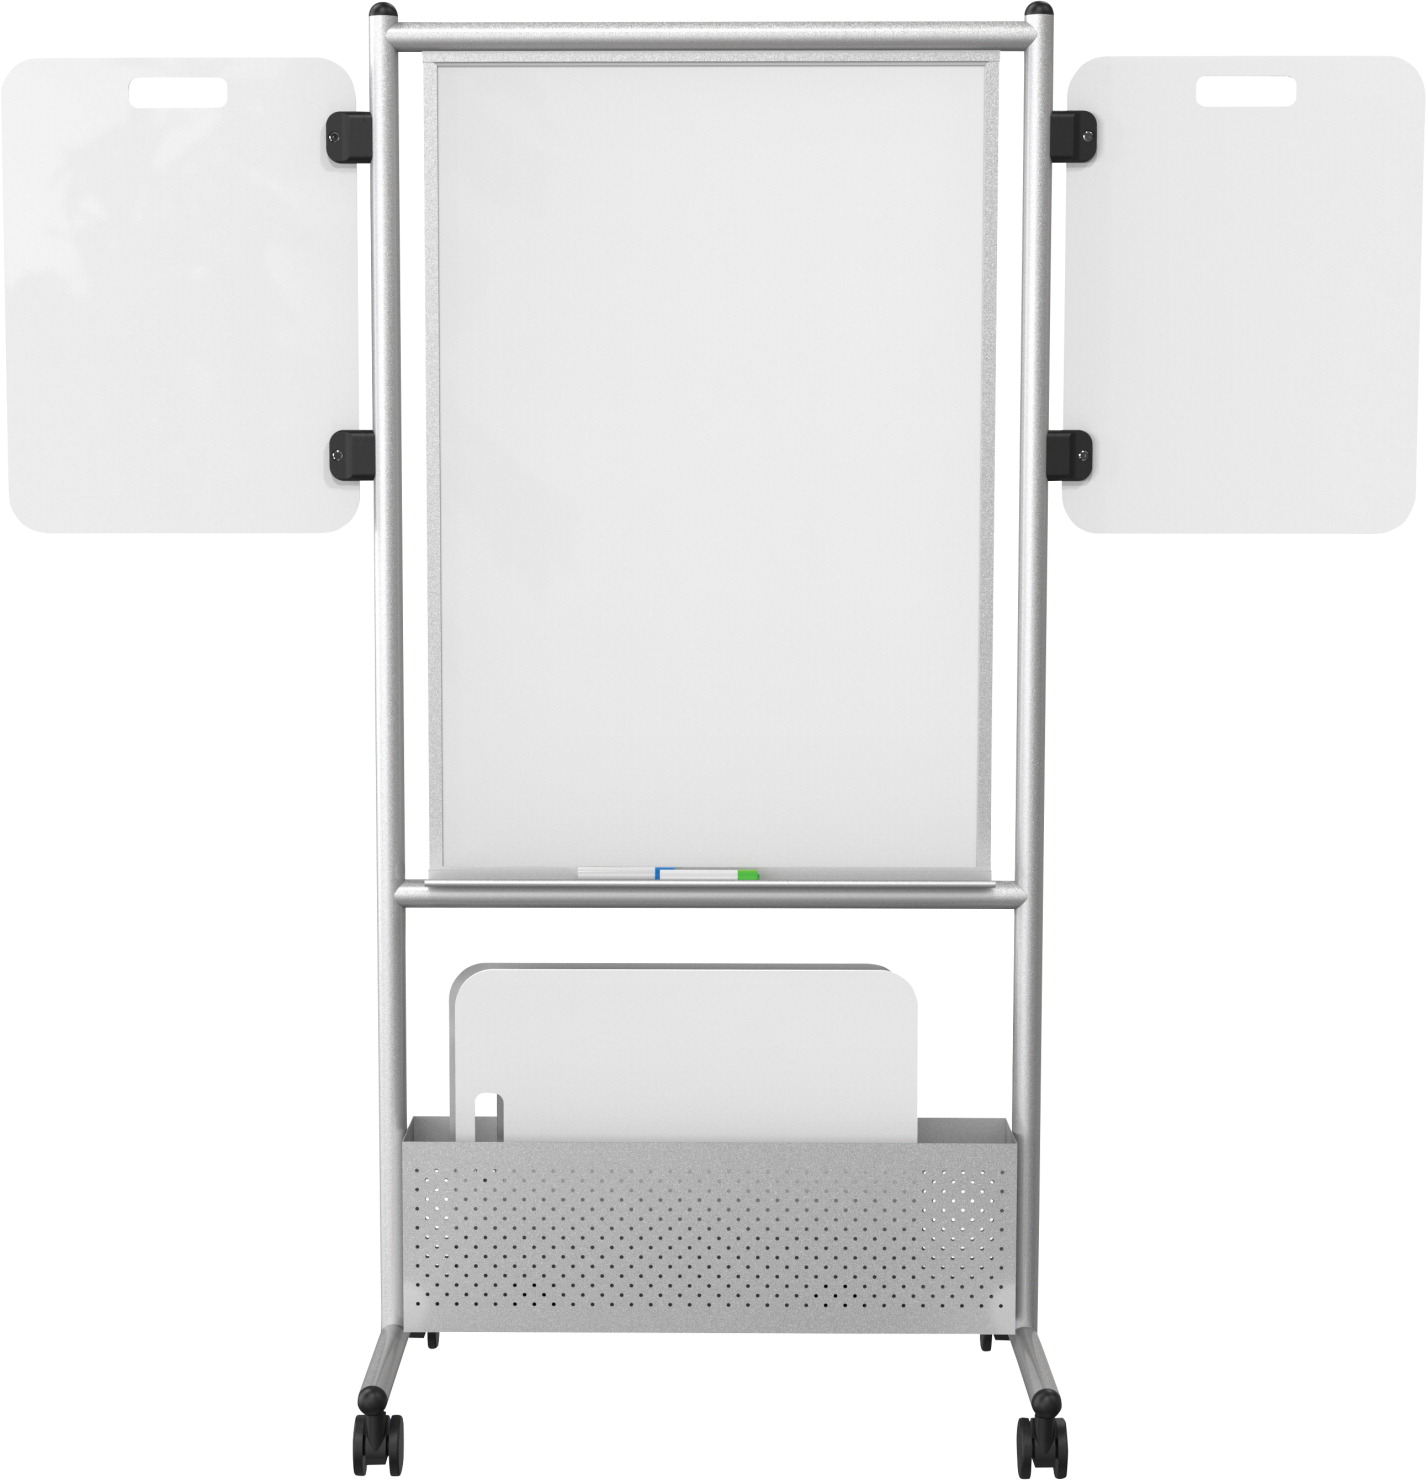 Best-Rite Double-Sided Expanding Nest Magnetic Easel, 34-3/4 x 24 x 72 Inches, Porcelain Steel